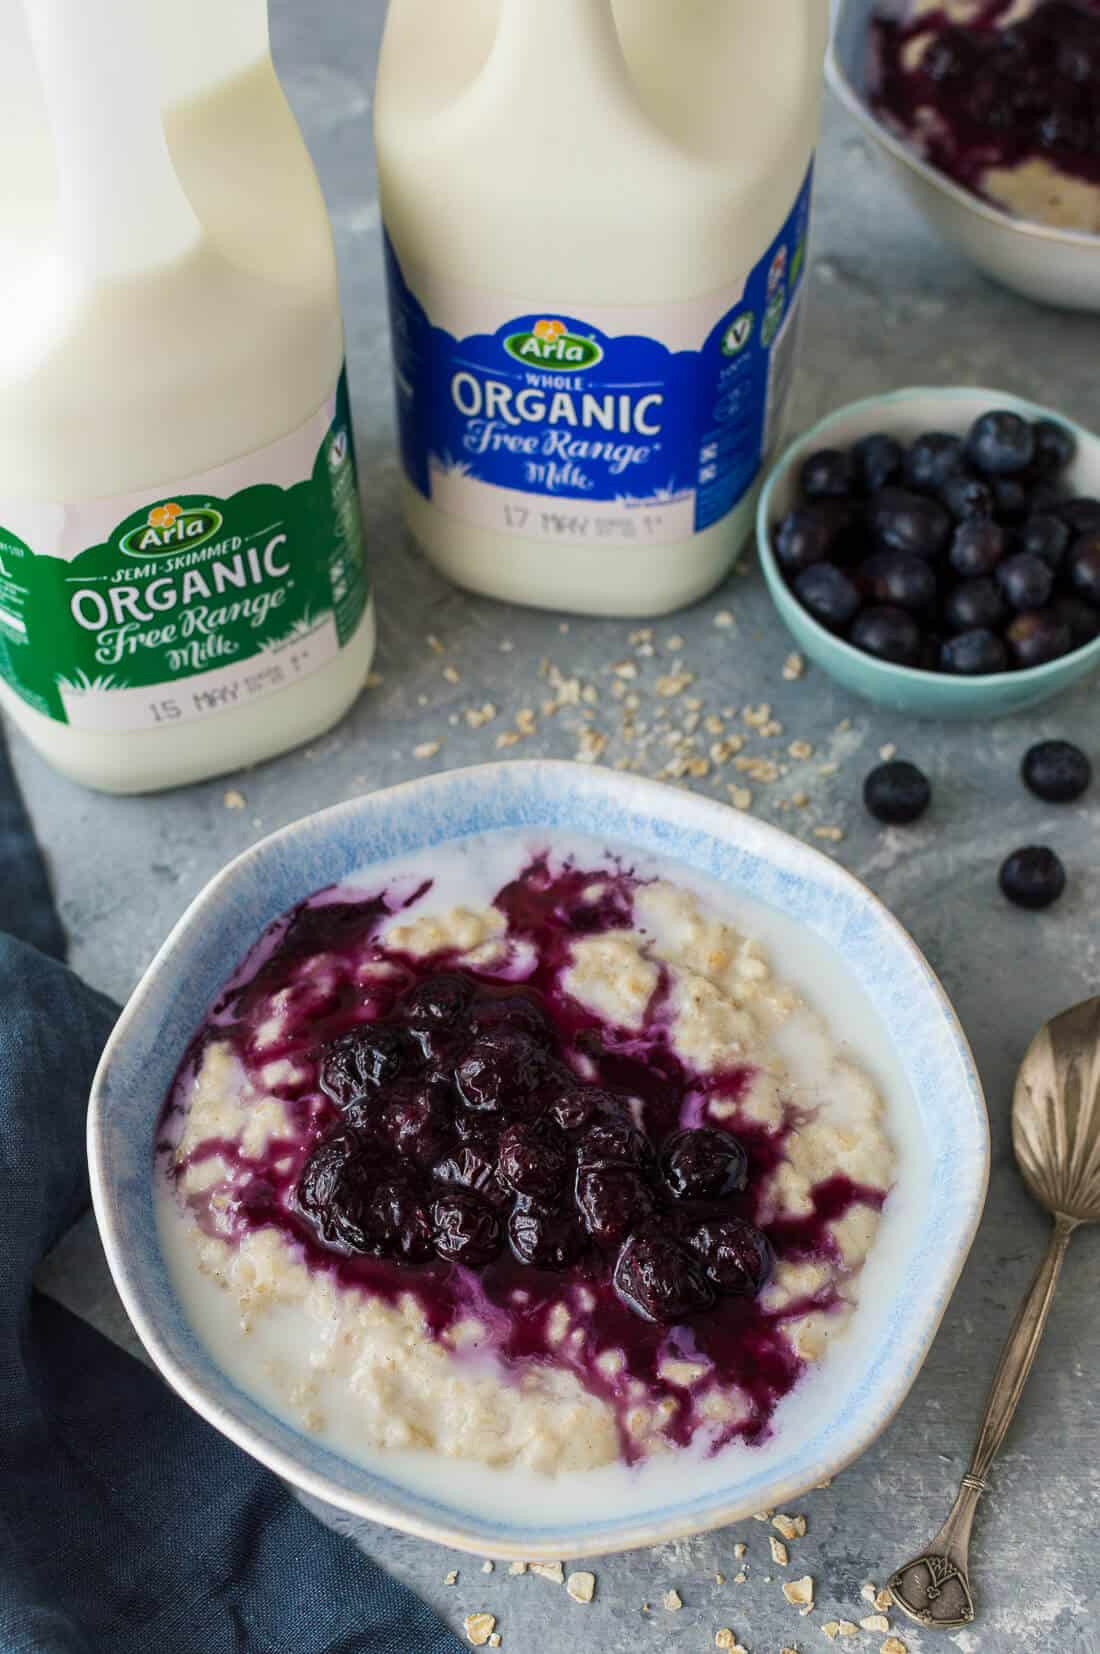 banana porridge with blueberry compote with two bottles of Arla organic milk